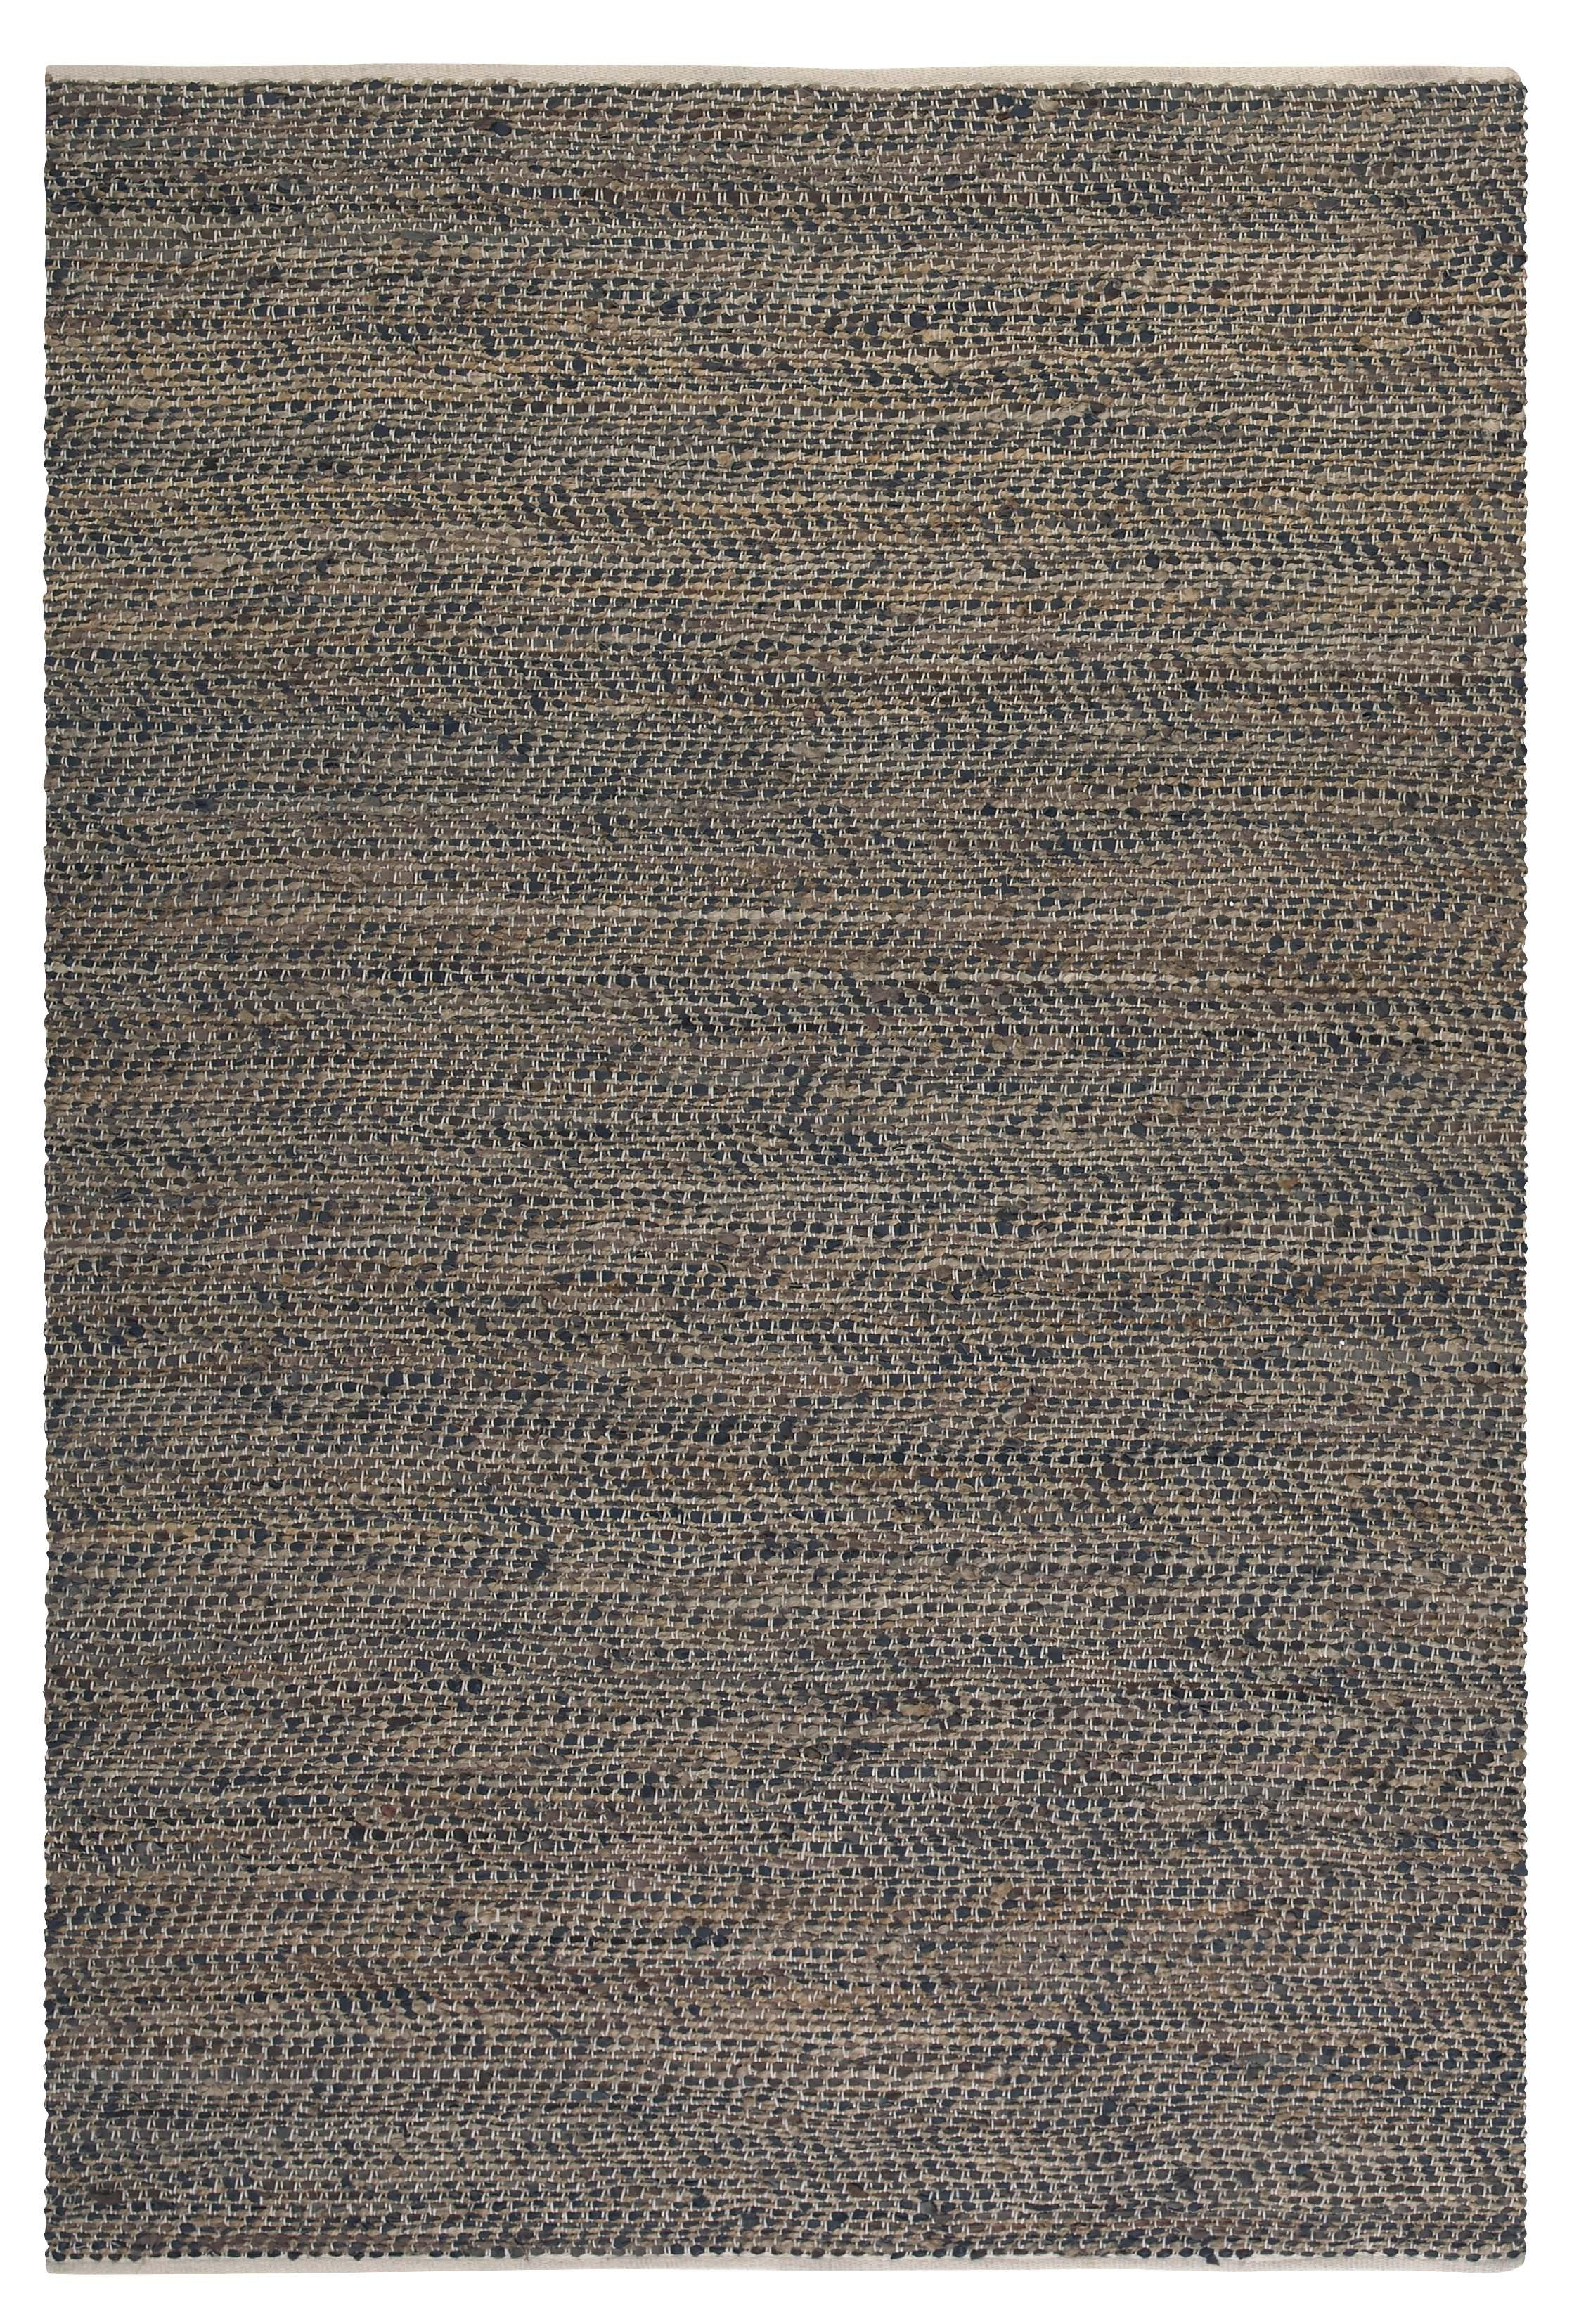 Uttermost Rugs Tobais 5 X 8 - Item Number: 71001-5